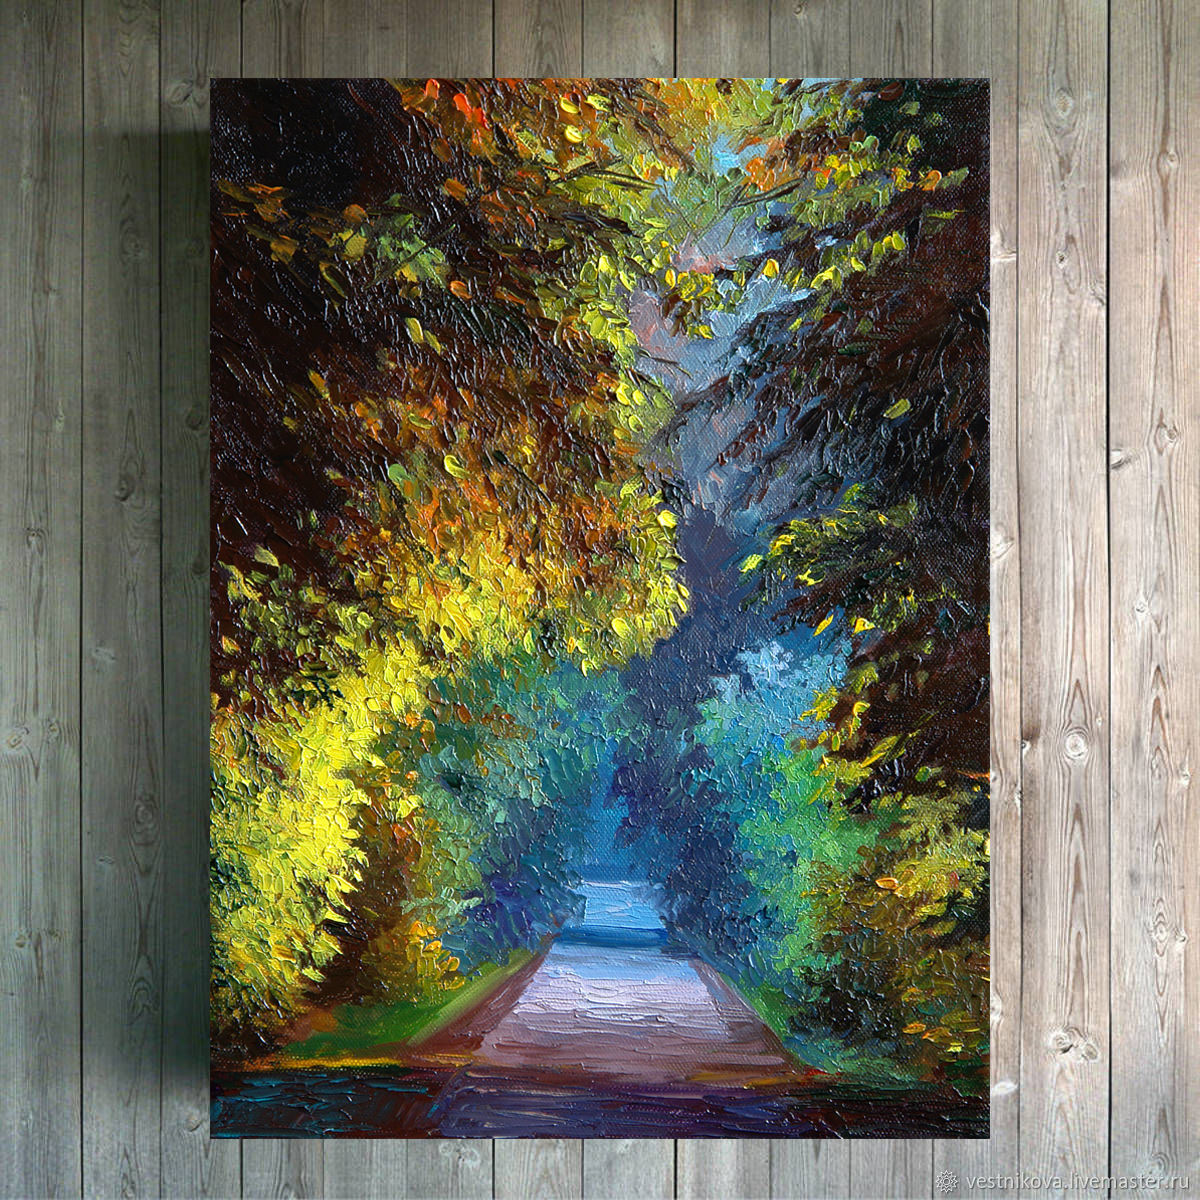 Painting 'the Road through the forest' oil on canvas 30h40, Pictures, Moscow,  Фото №1